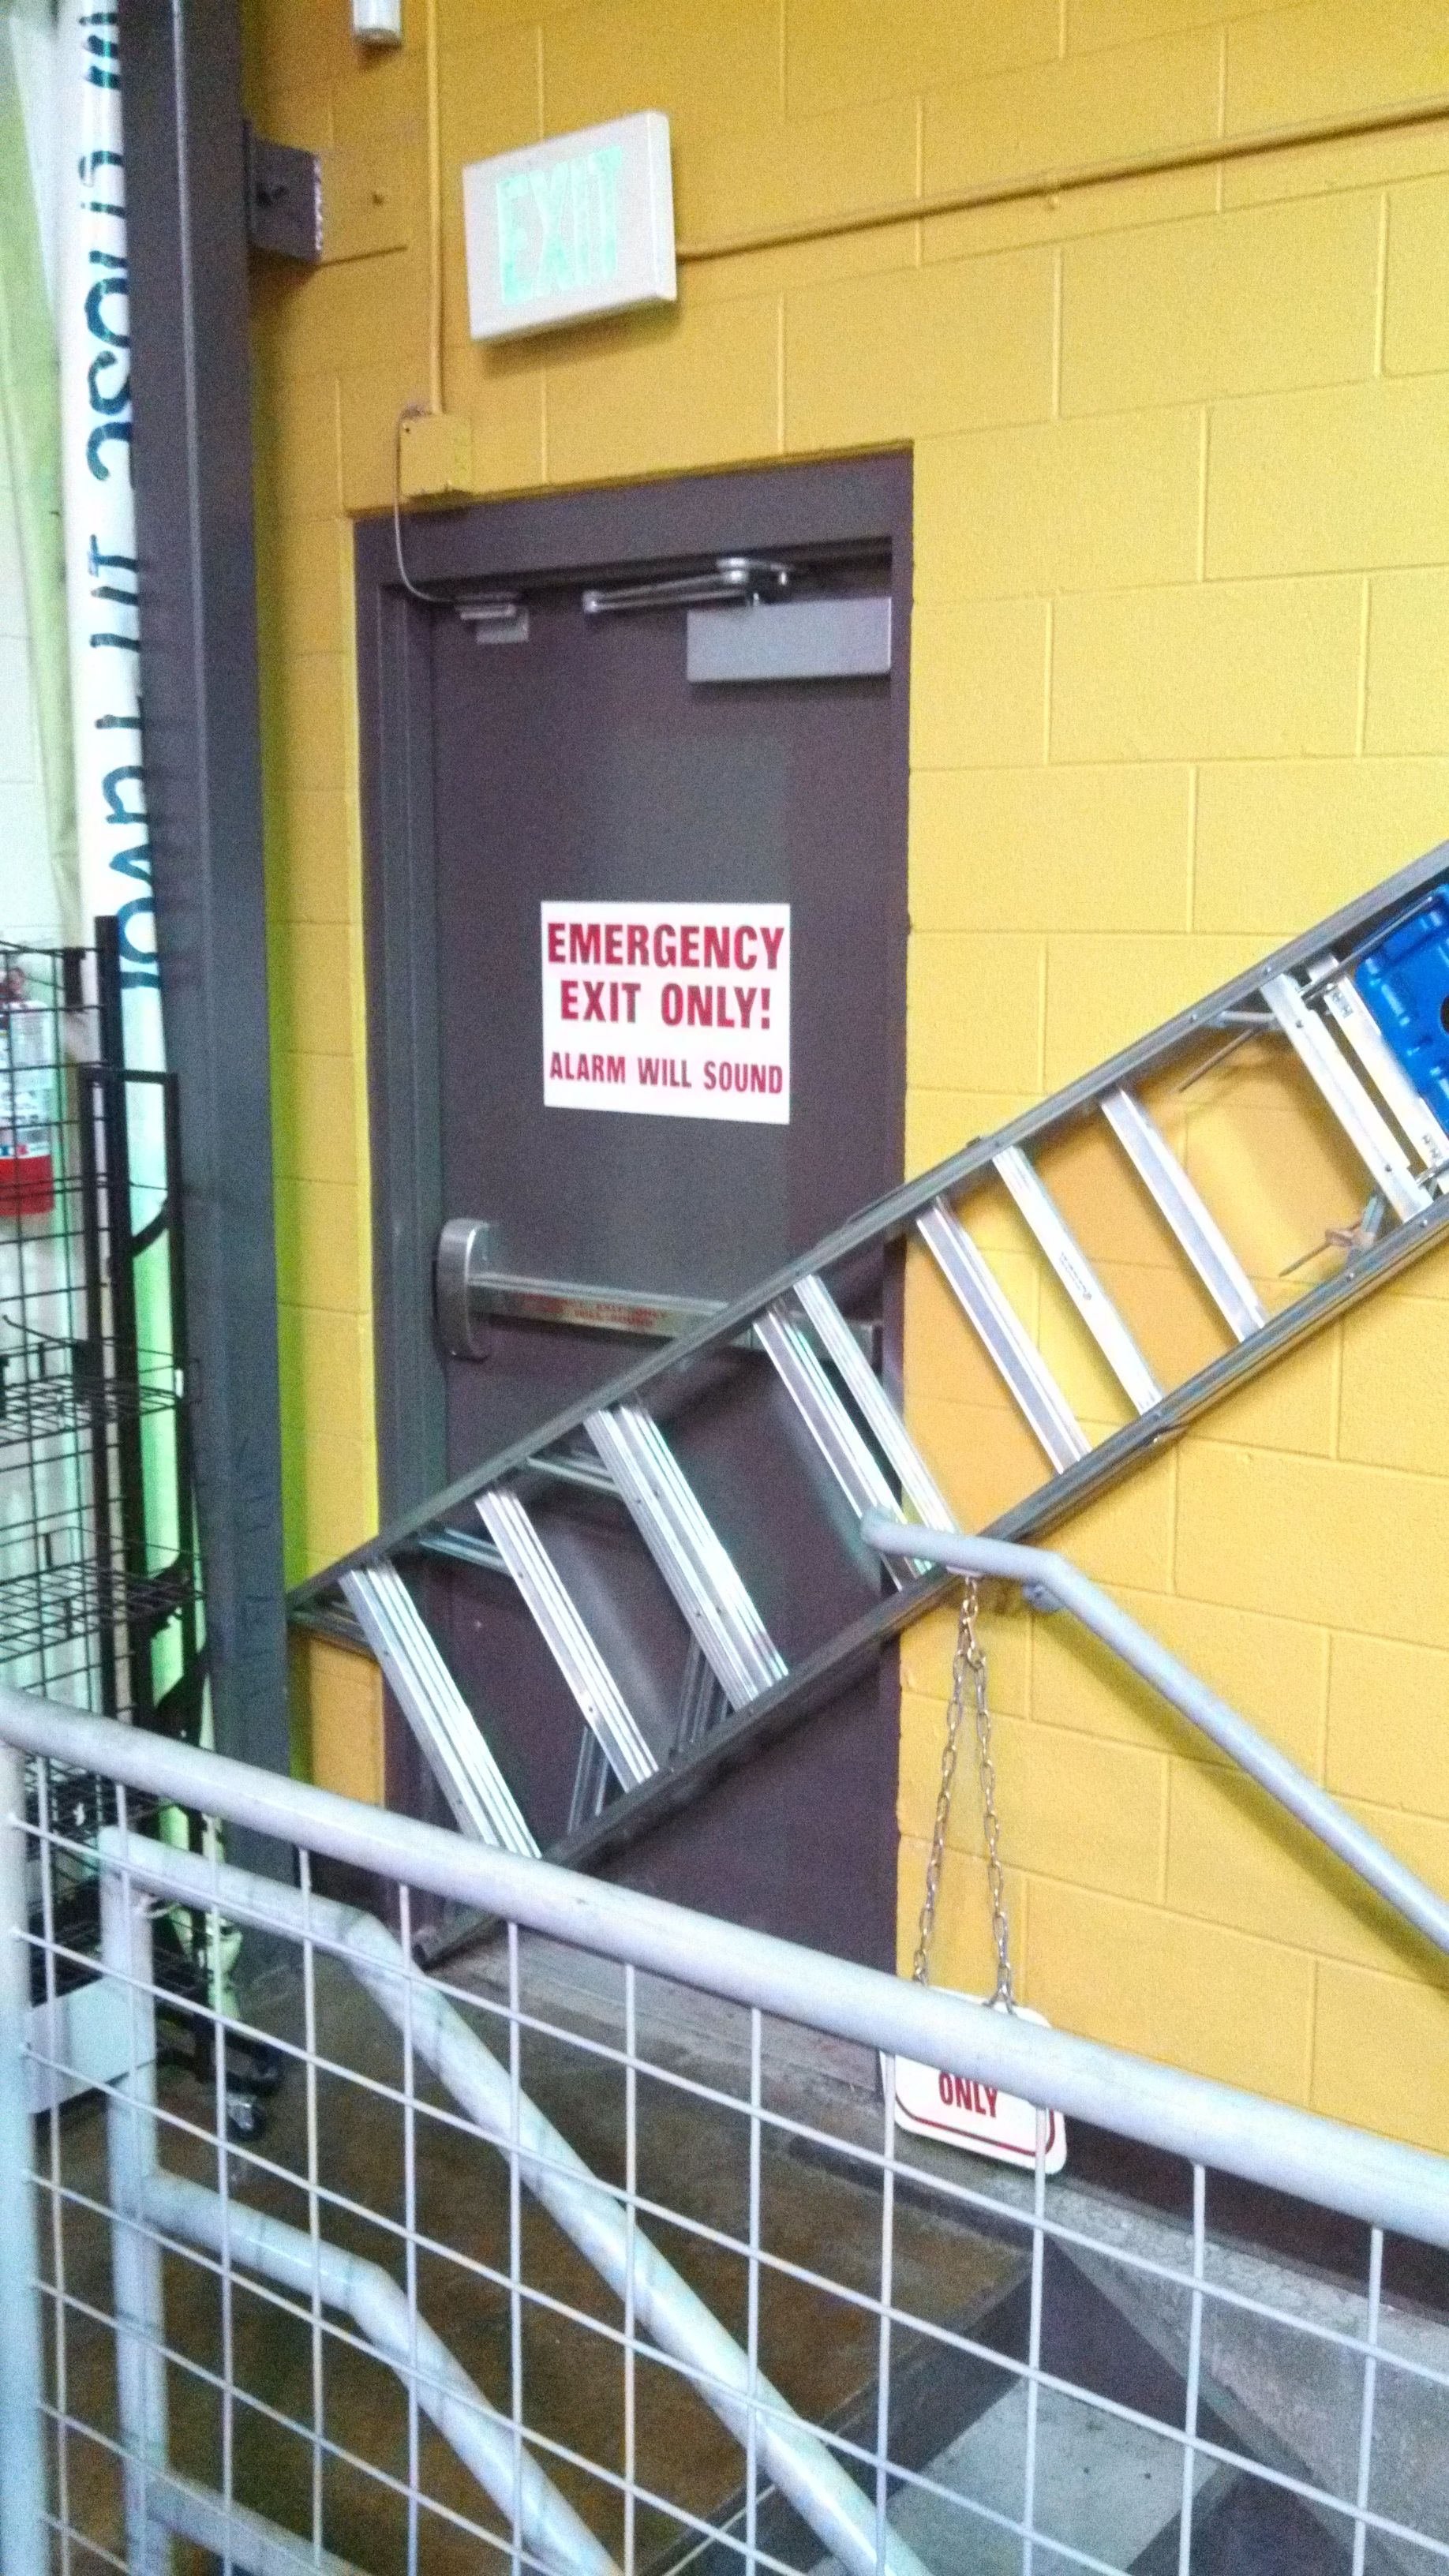 That's an OSHA approved ladder storage and emergency exit